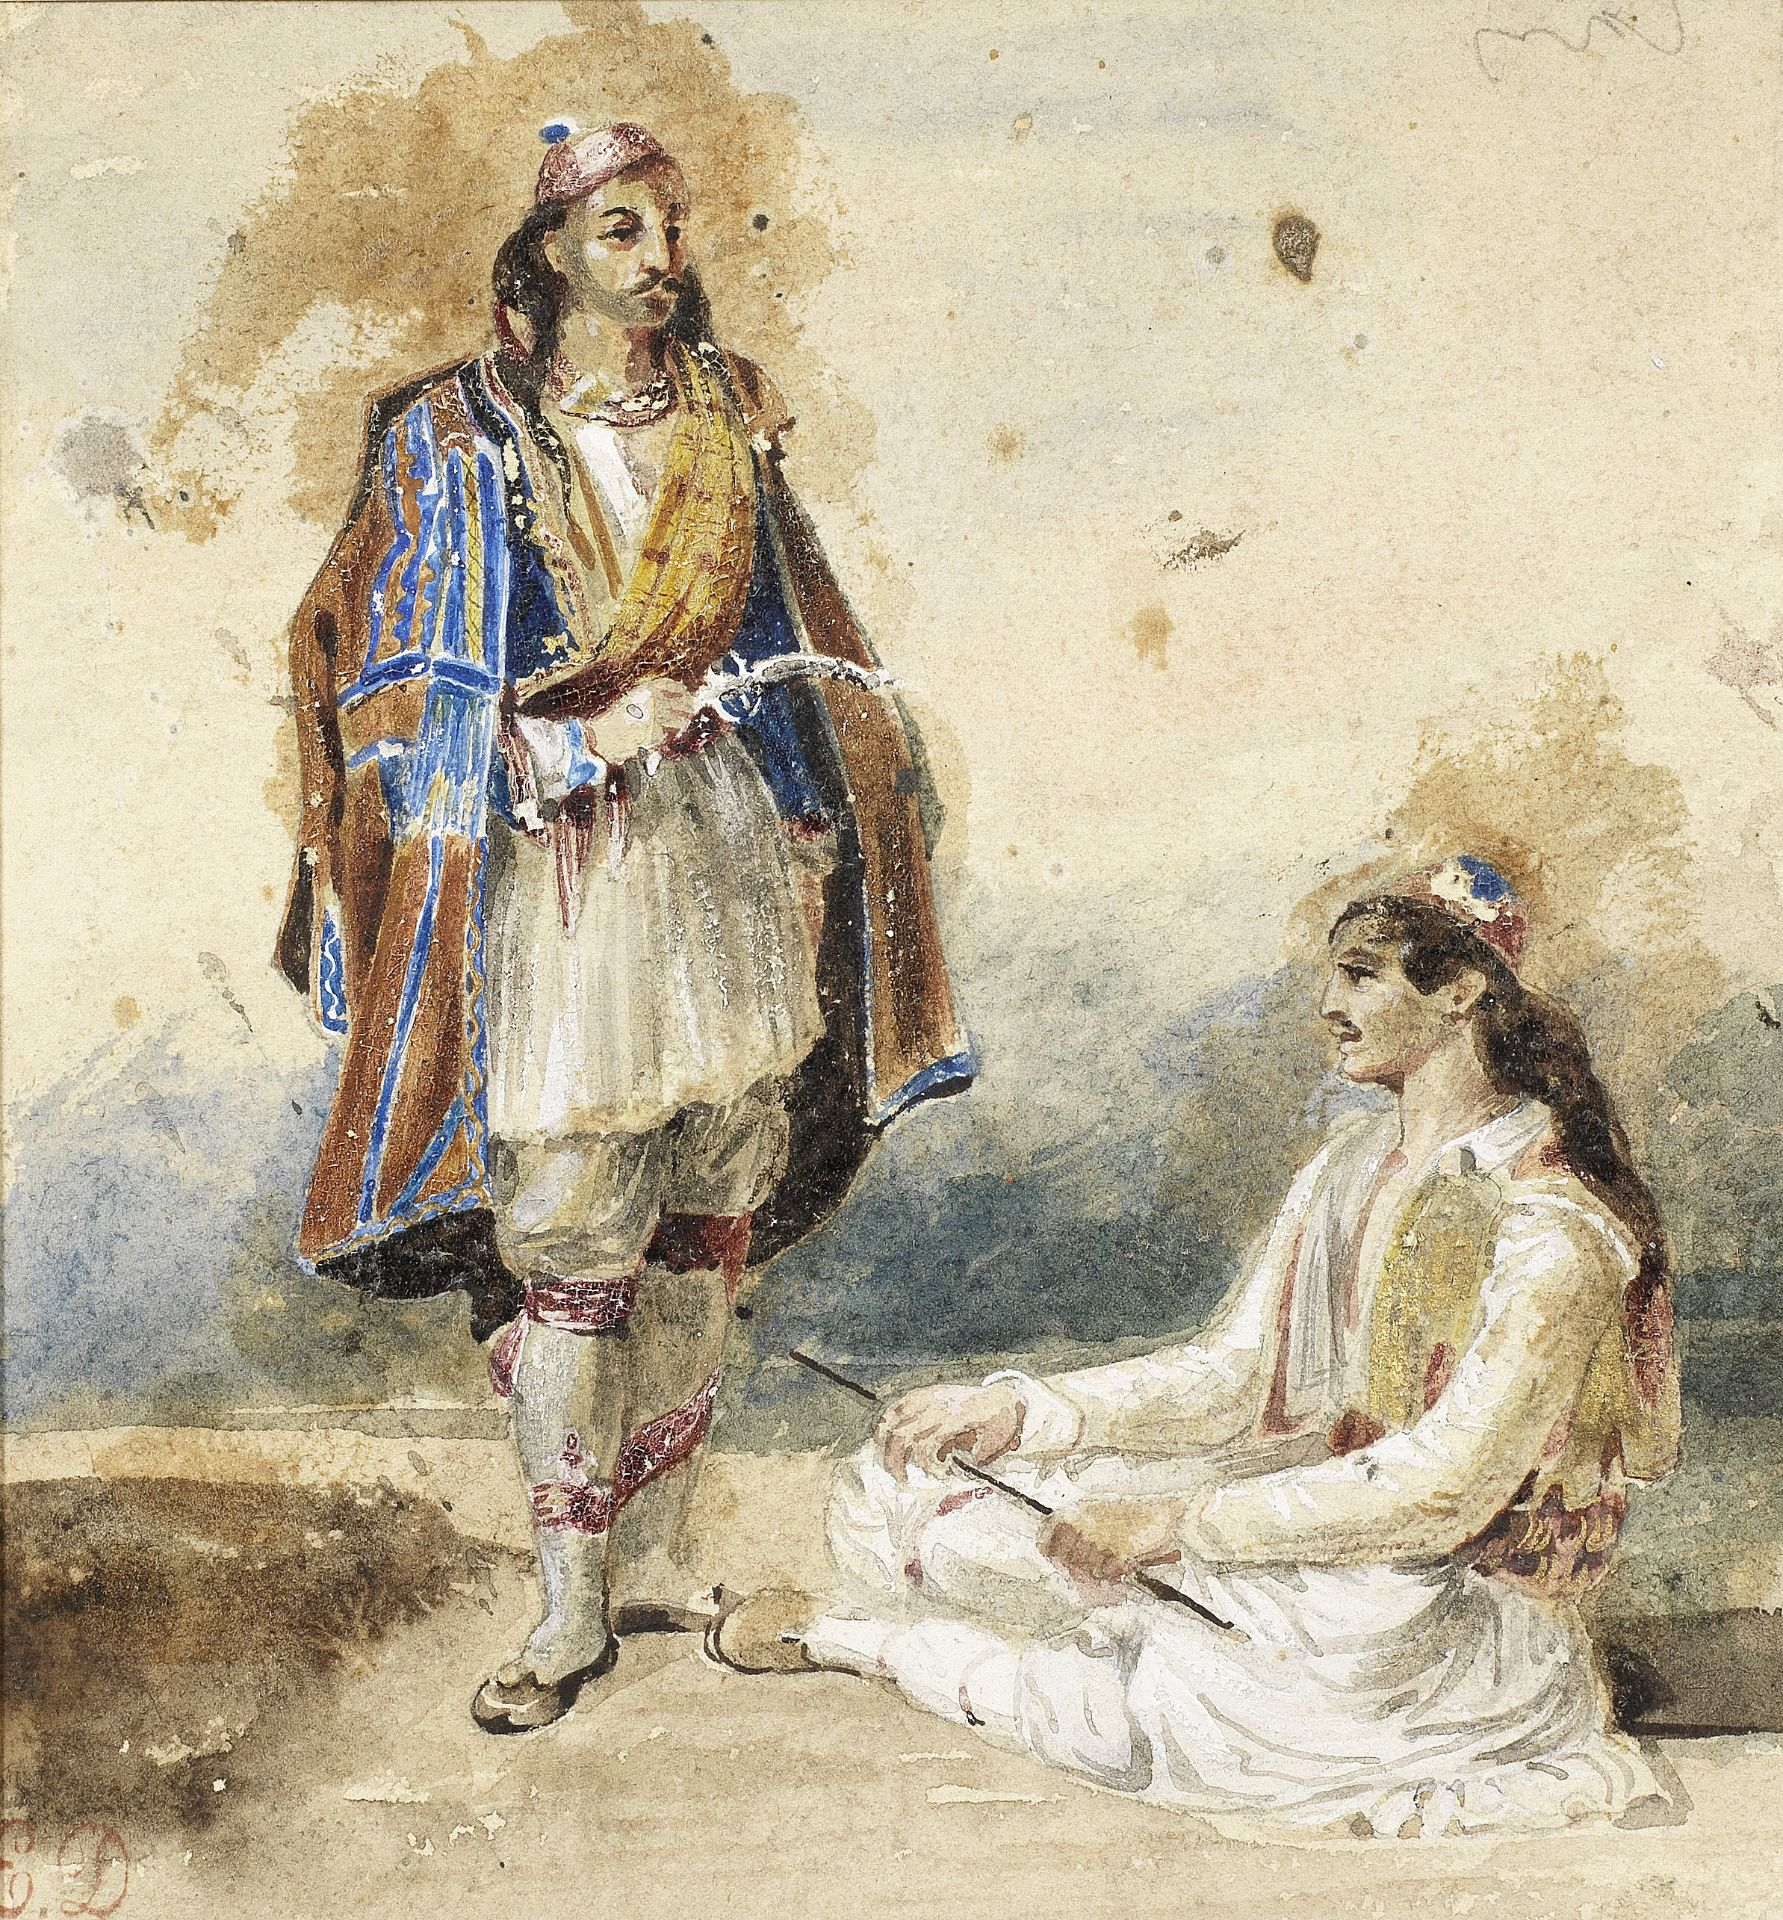 Eugène Delacroix (French, 1798-1863) Study of two Greeks (Executed circa 1823-1824)